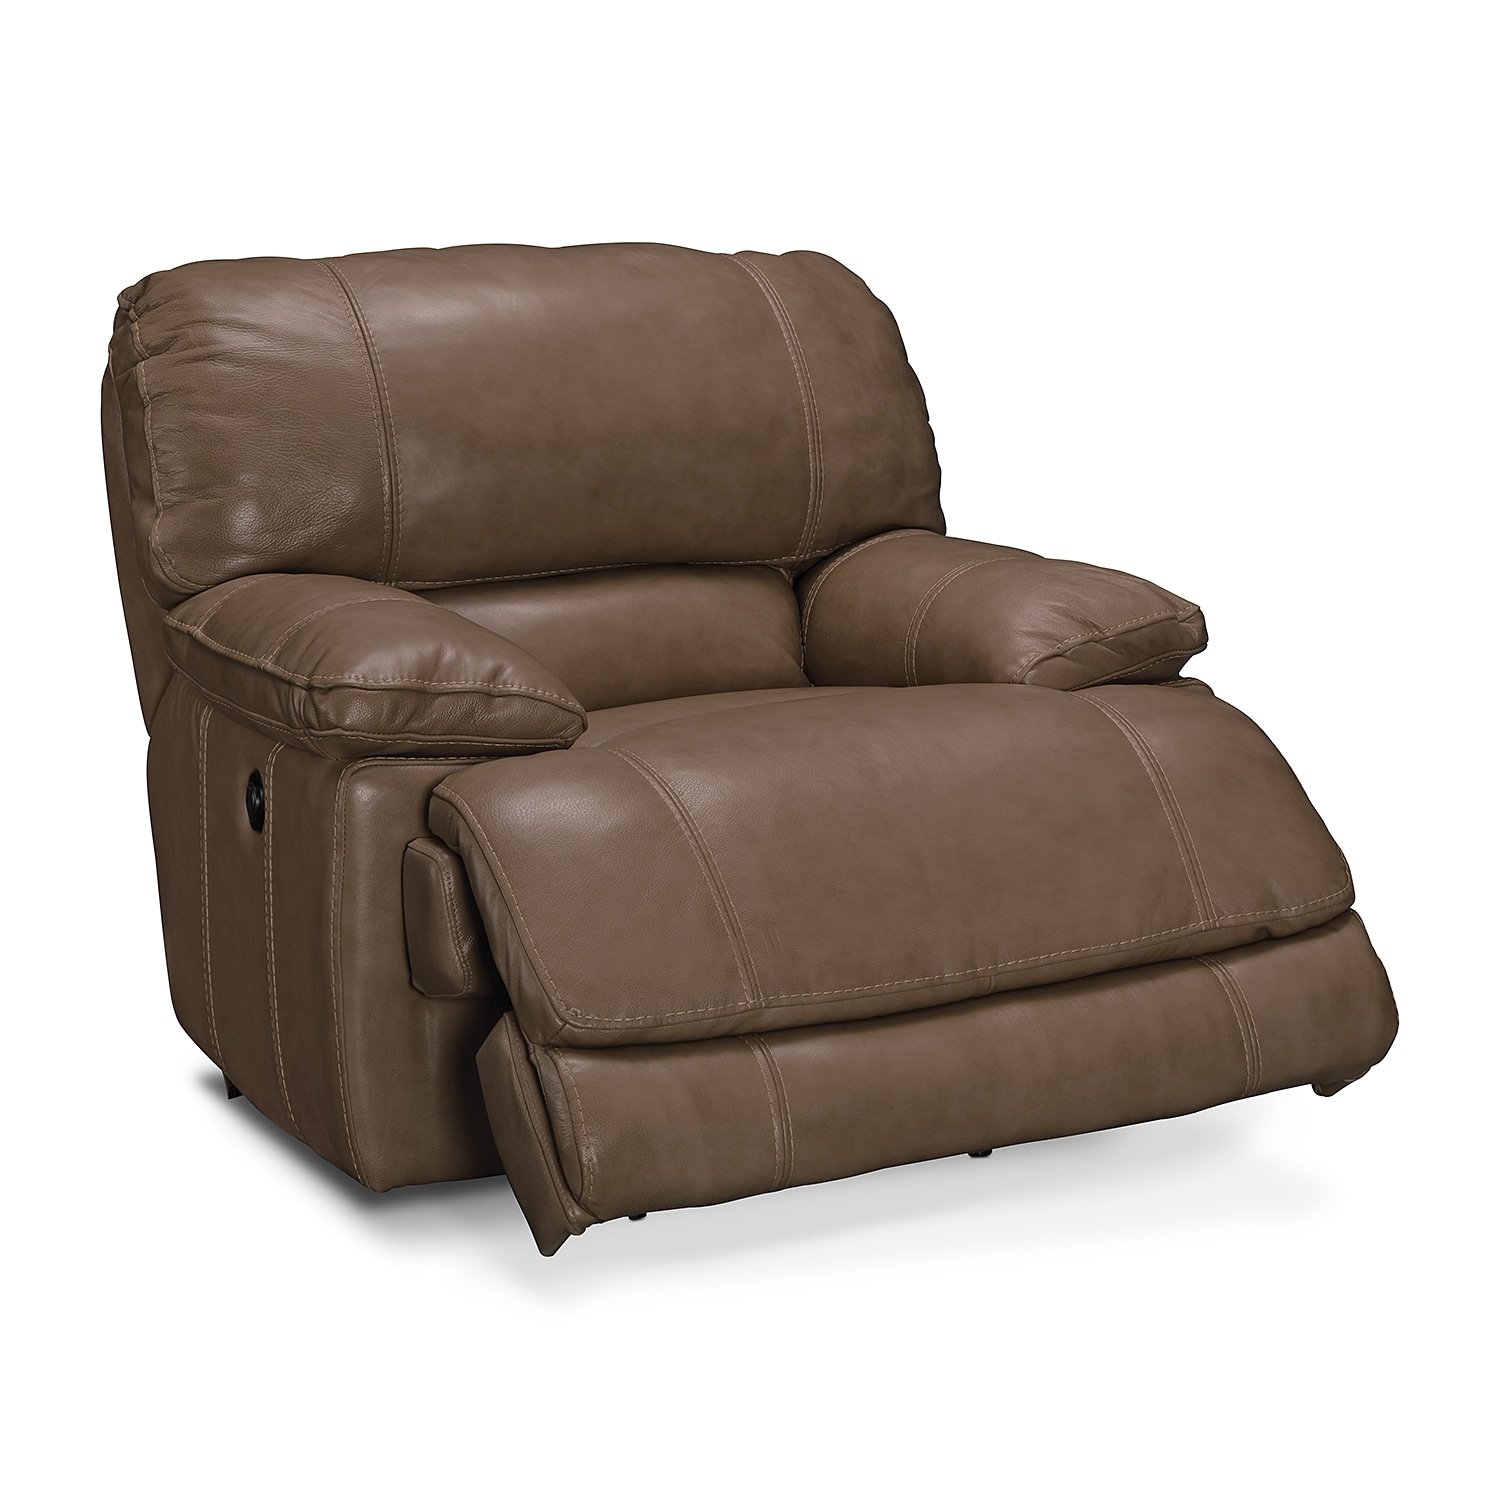 St Malo II Power Recliner American Signature Furniture